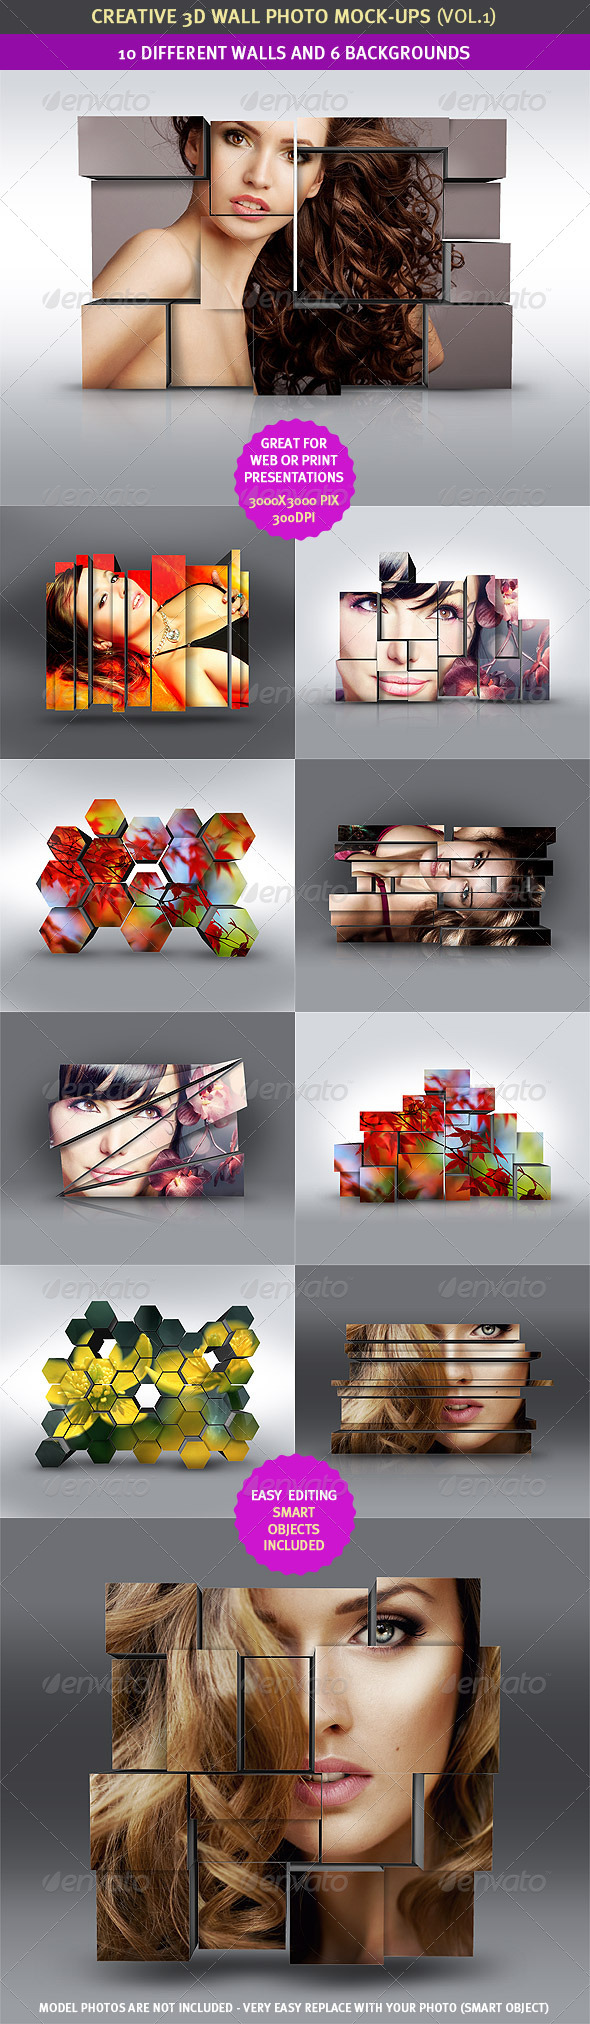 3D Wall Photo Mock-Ups 1 - Miscellaneous Displays